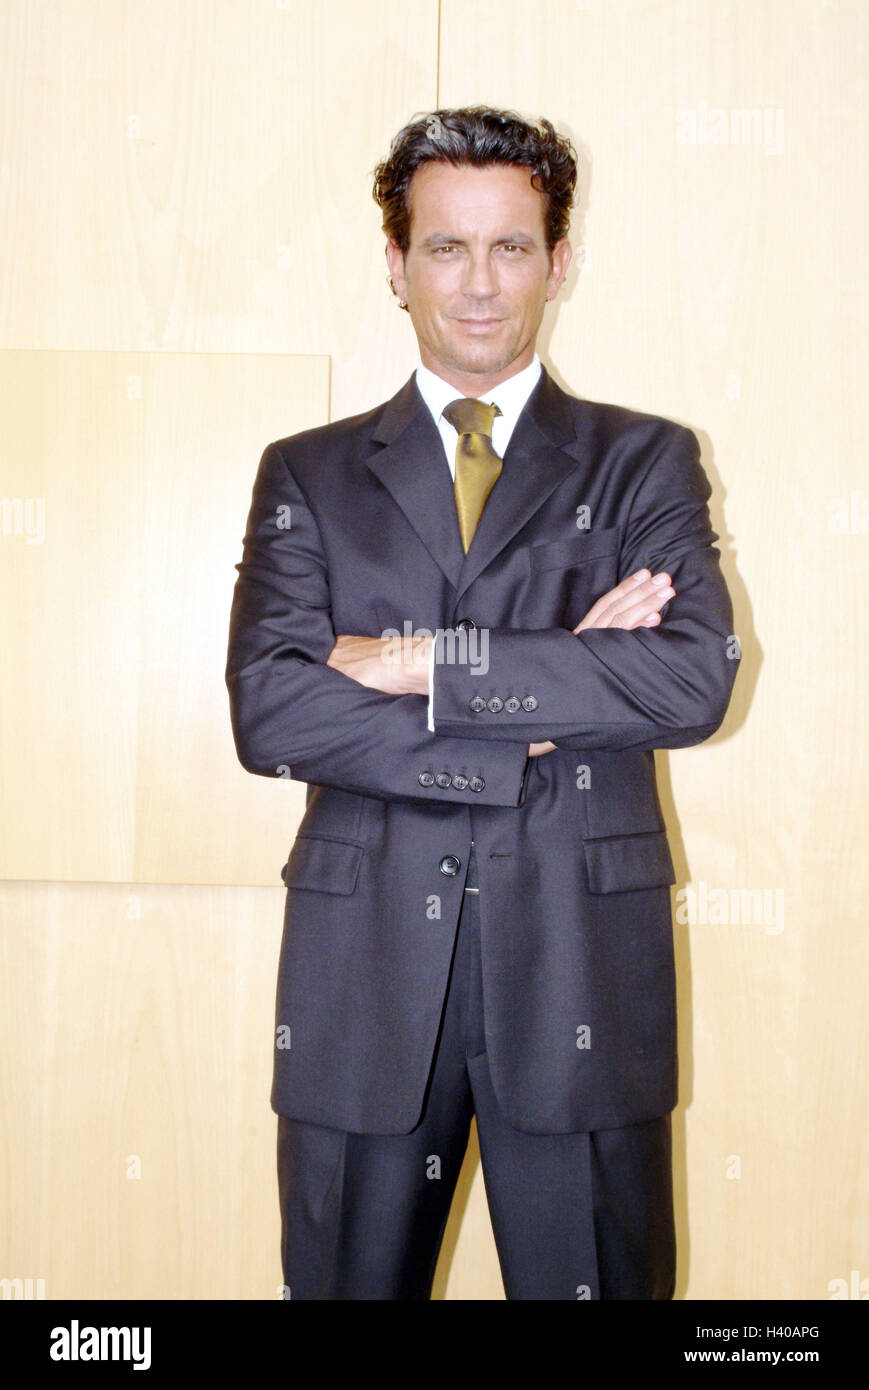 Office, manager, stand, self-confidently, bank, cashier, banker, man, 34 years, businessman, clothes, suit, business, - Stock Image